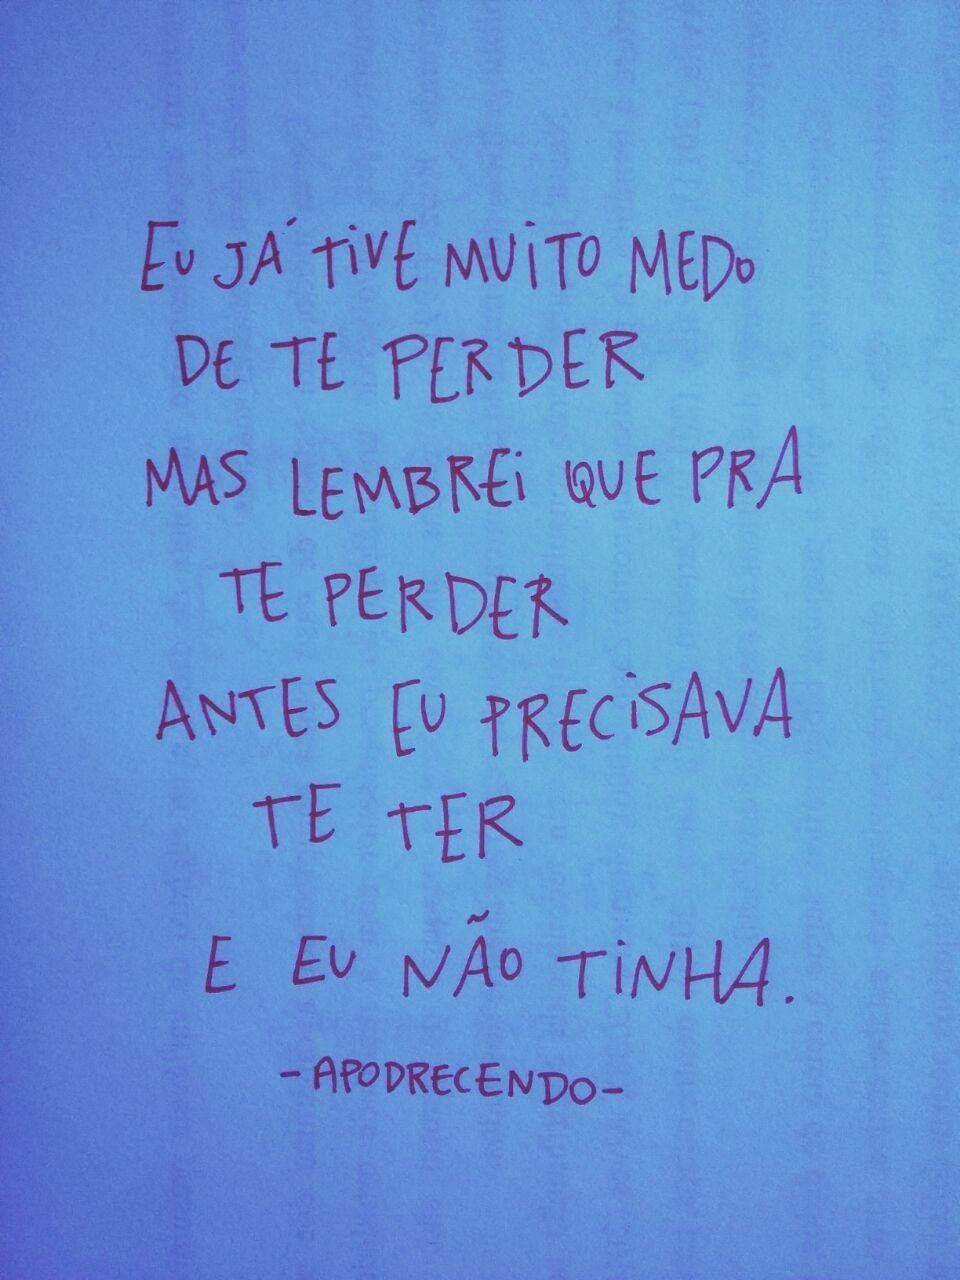 Pin By Nanda On P O E M A S Pinterest Frases Poemas And Verdades